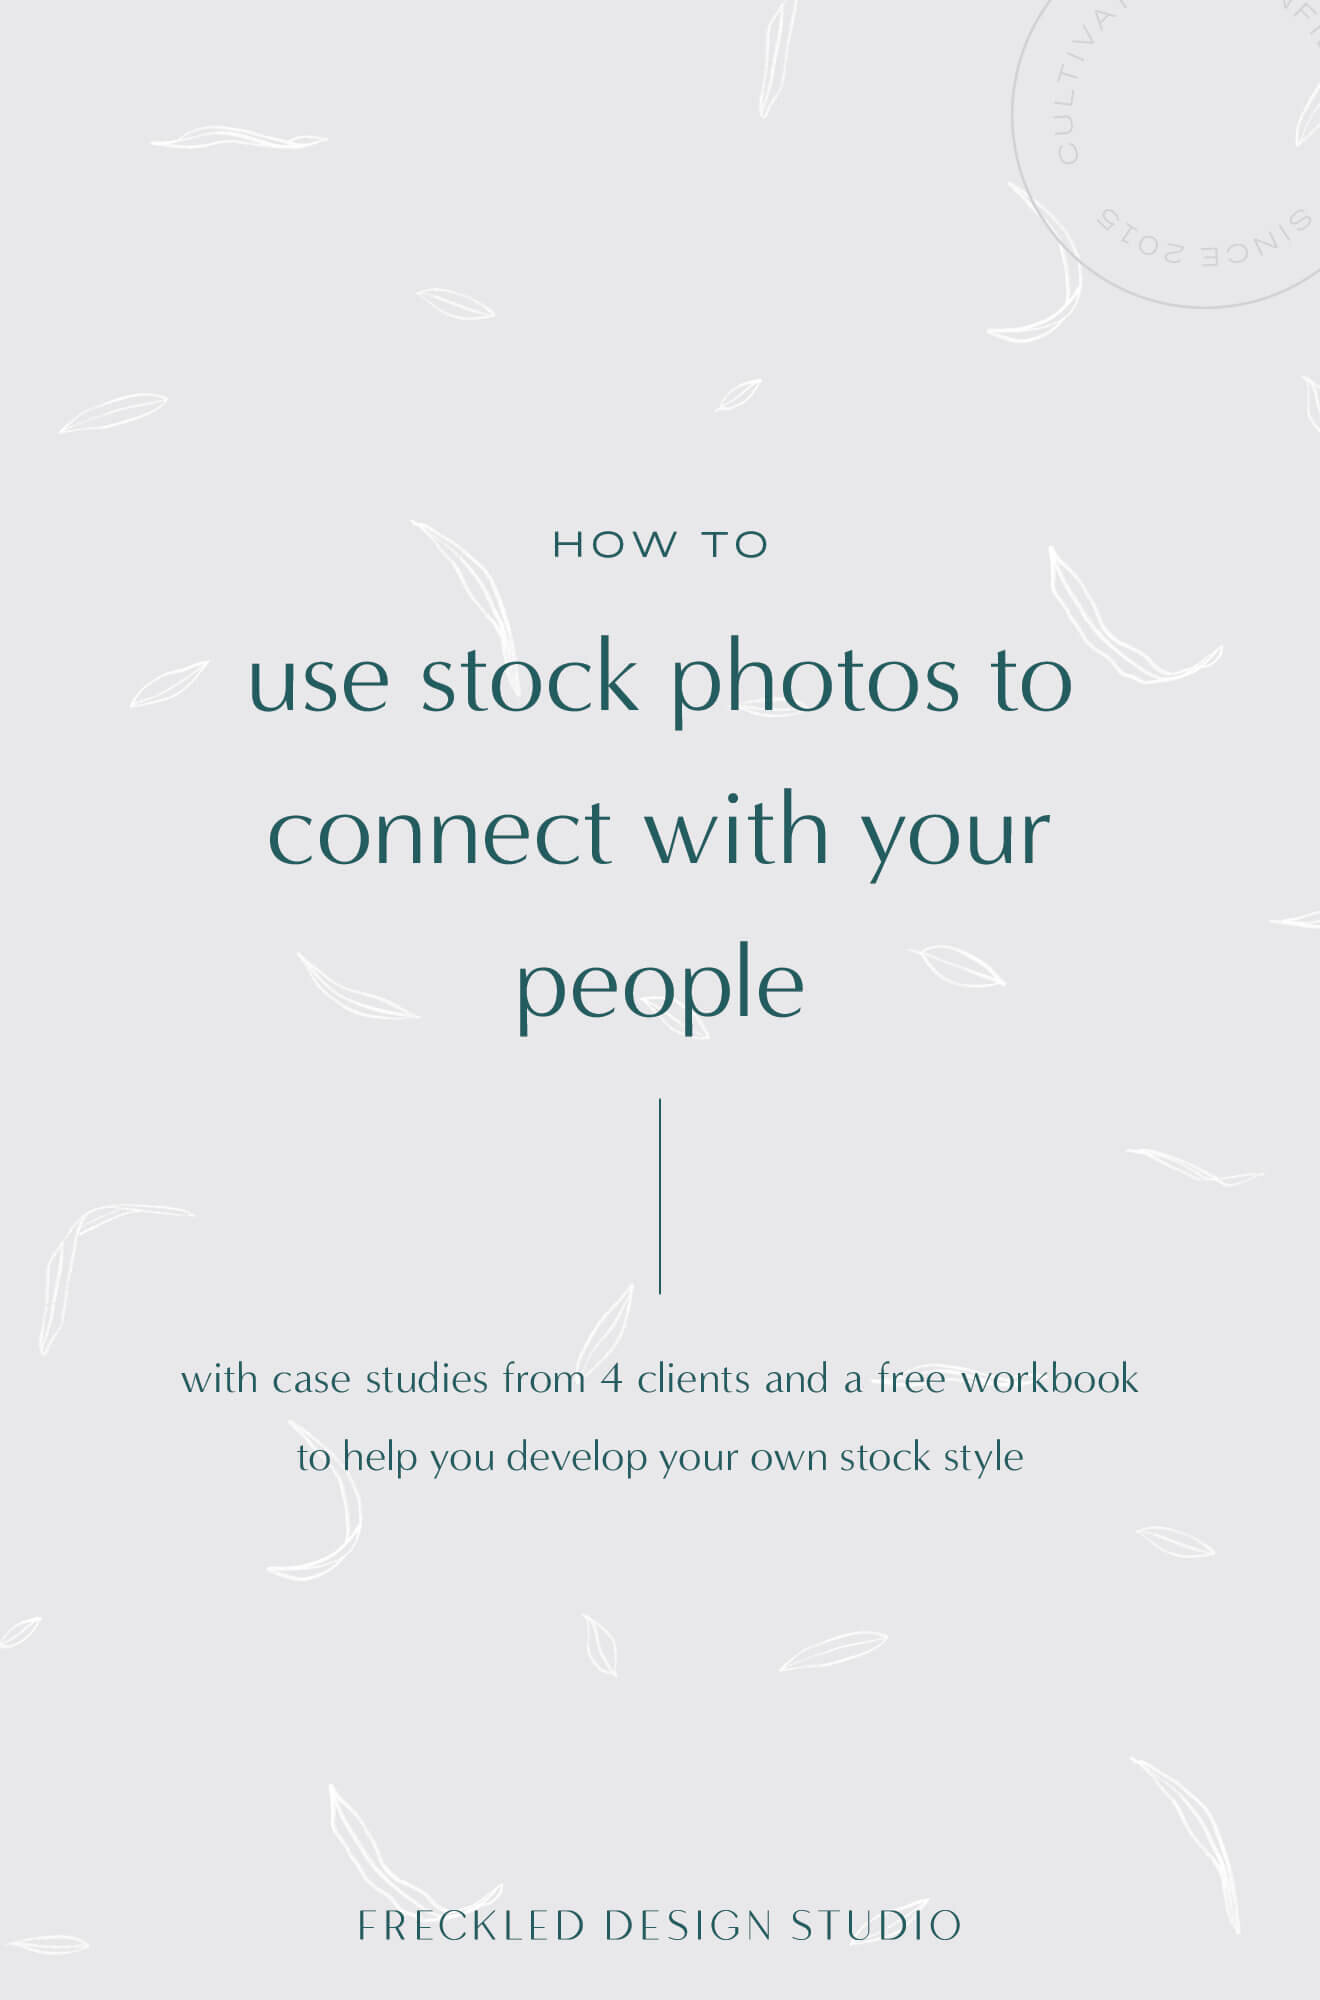 If you're feeling very inspired but a tiny bit stuck, I've created a workbook to help you curate your own library of stock images that speak to your people and share your story in a compelling way!